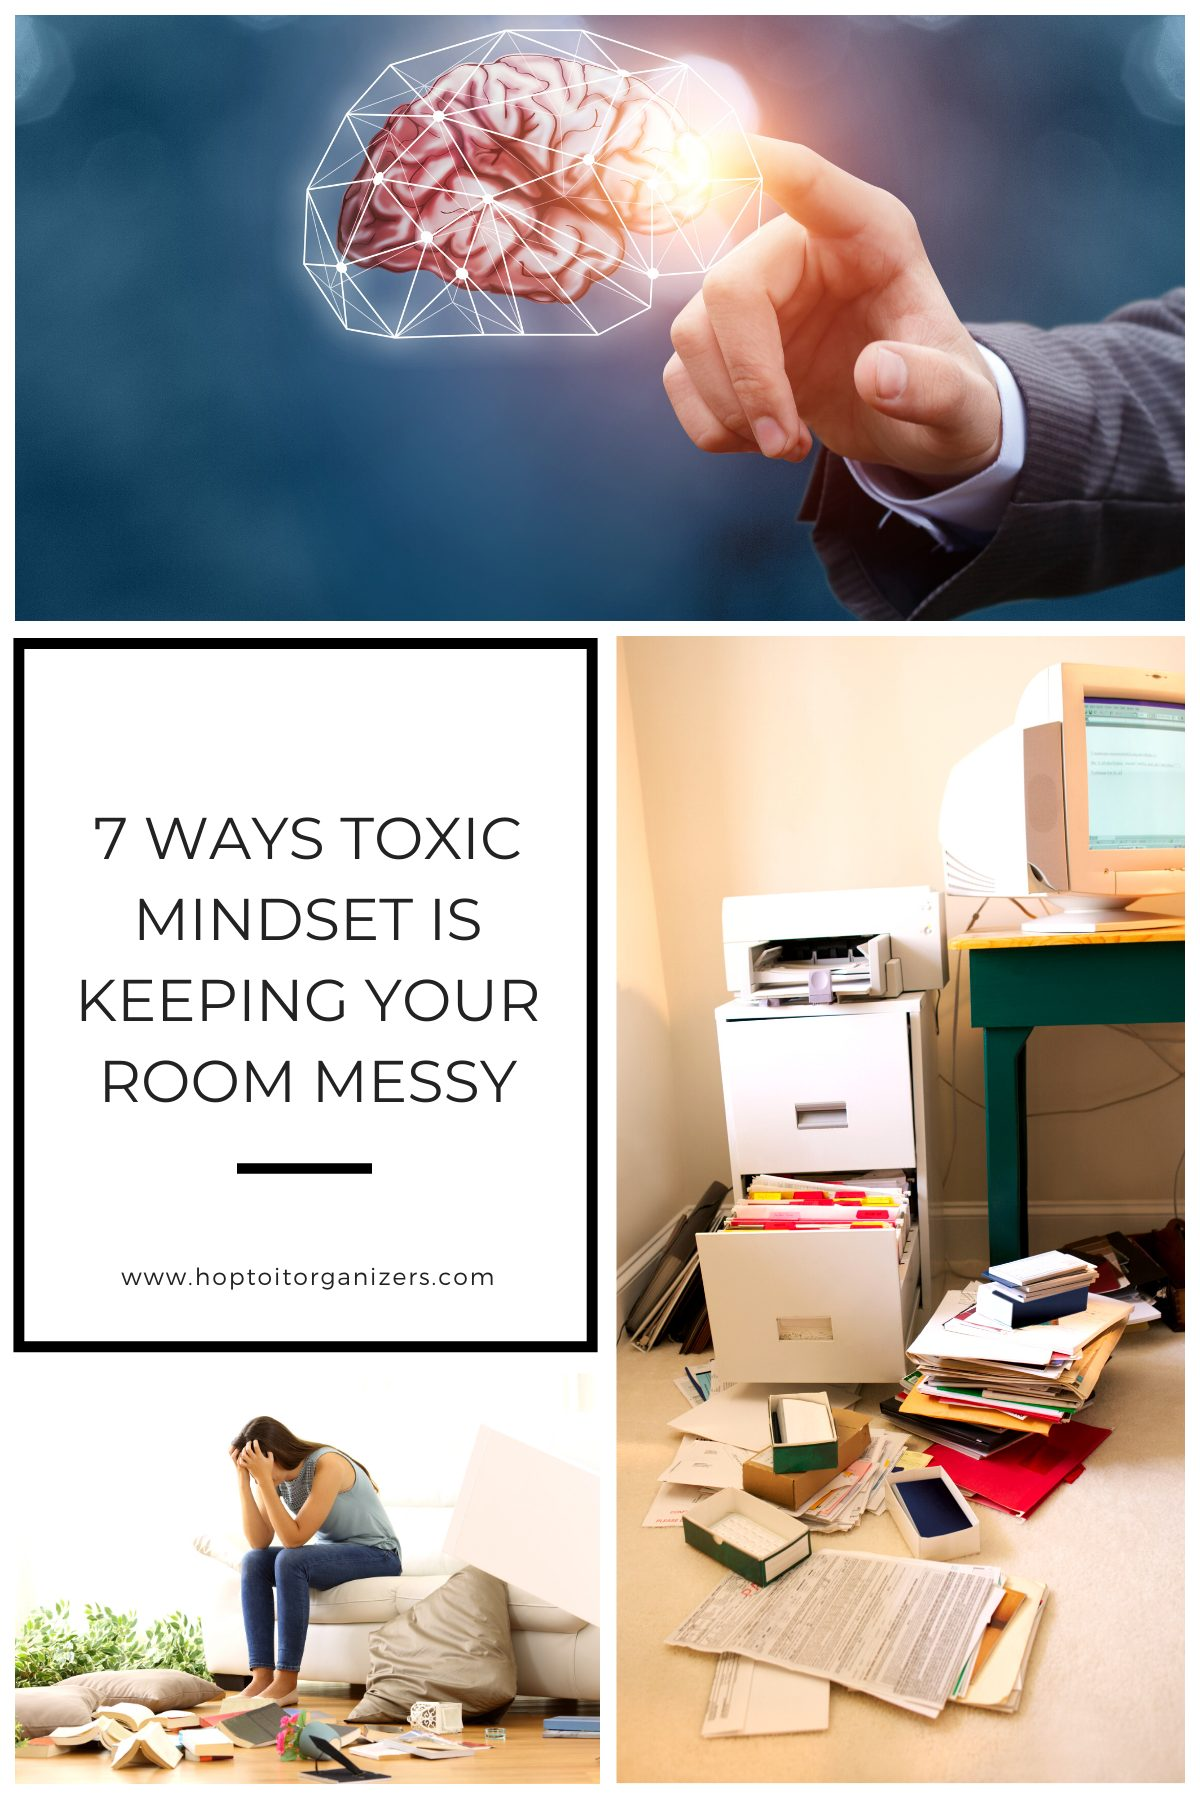 Blog graphic - 7 Ways Toxic Mindset Is Keeping Your Room Messy